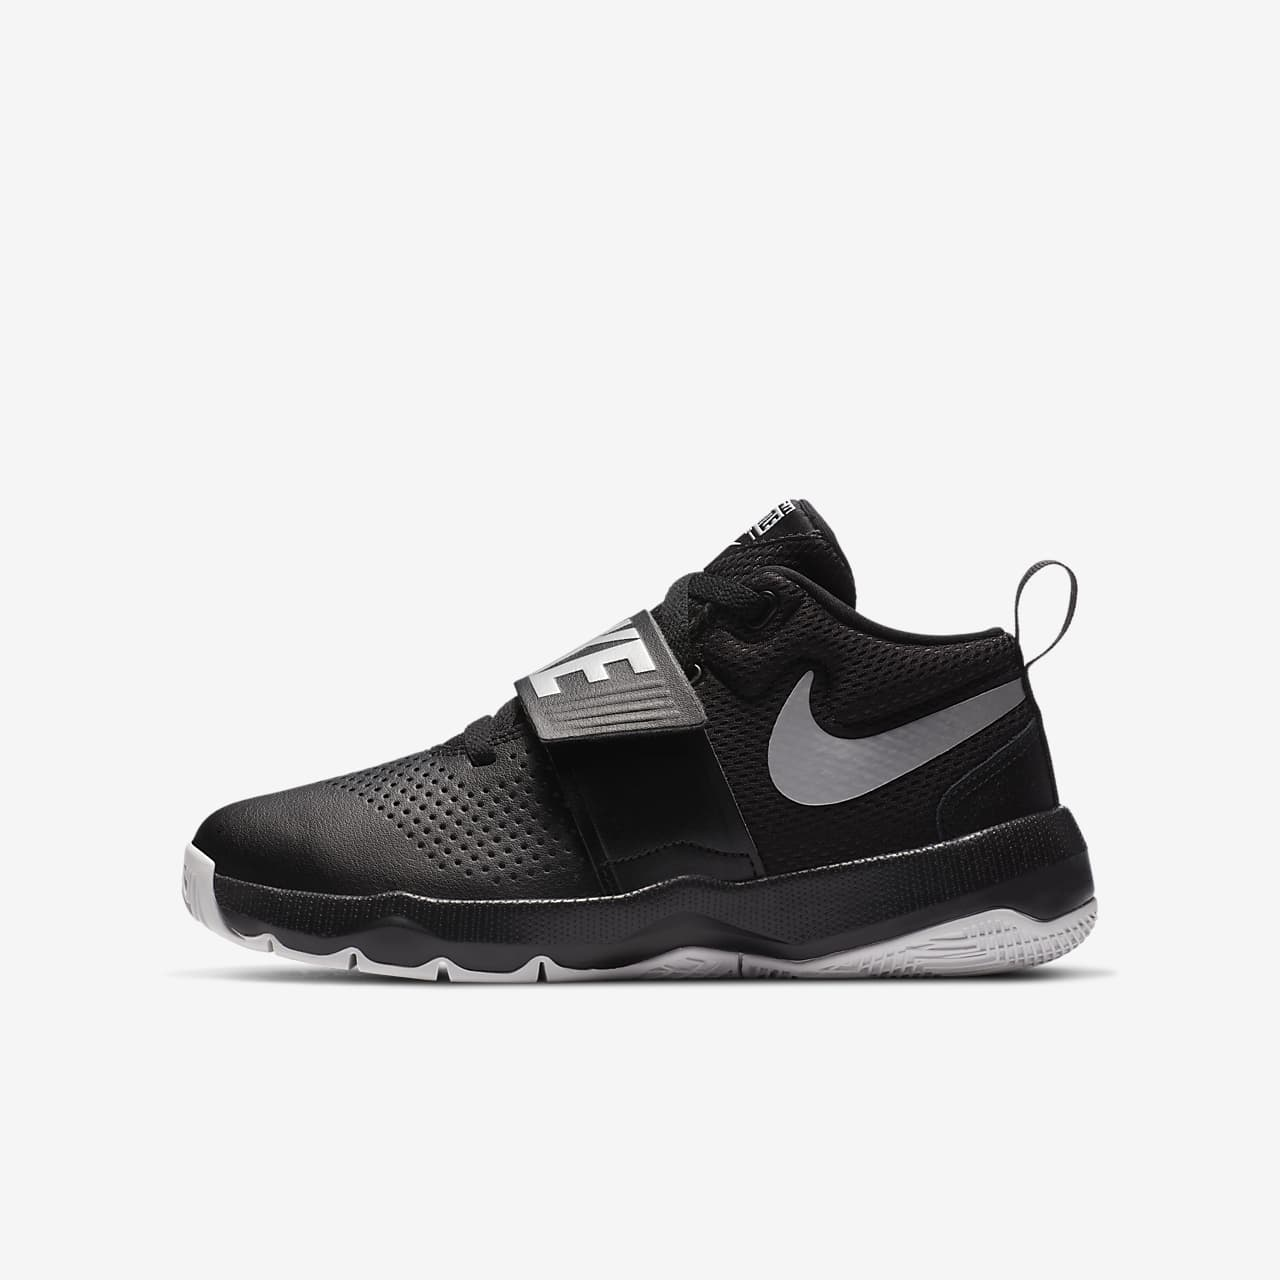 22d70c6c7d4 Nike Team Hustle D 8 Big Kids  Basketball Shoe. Nike.com